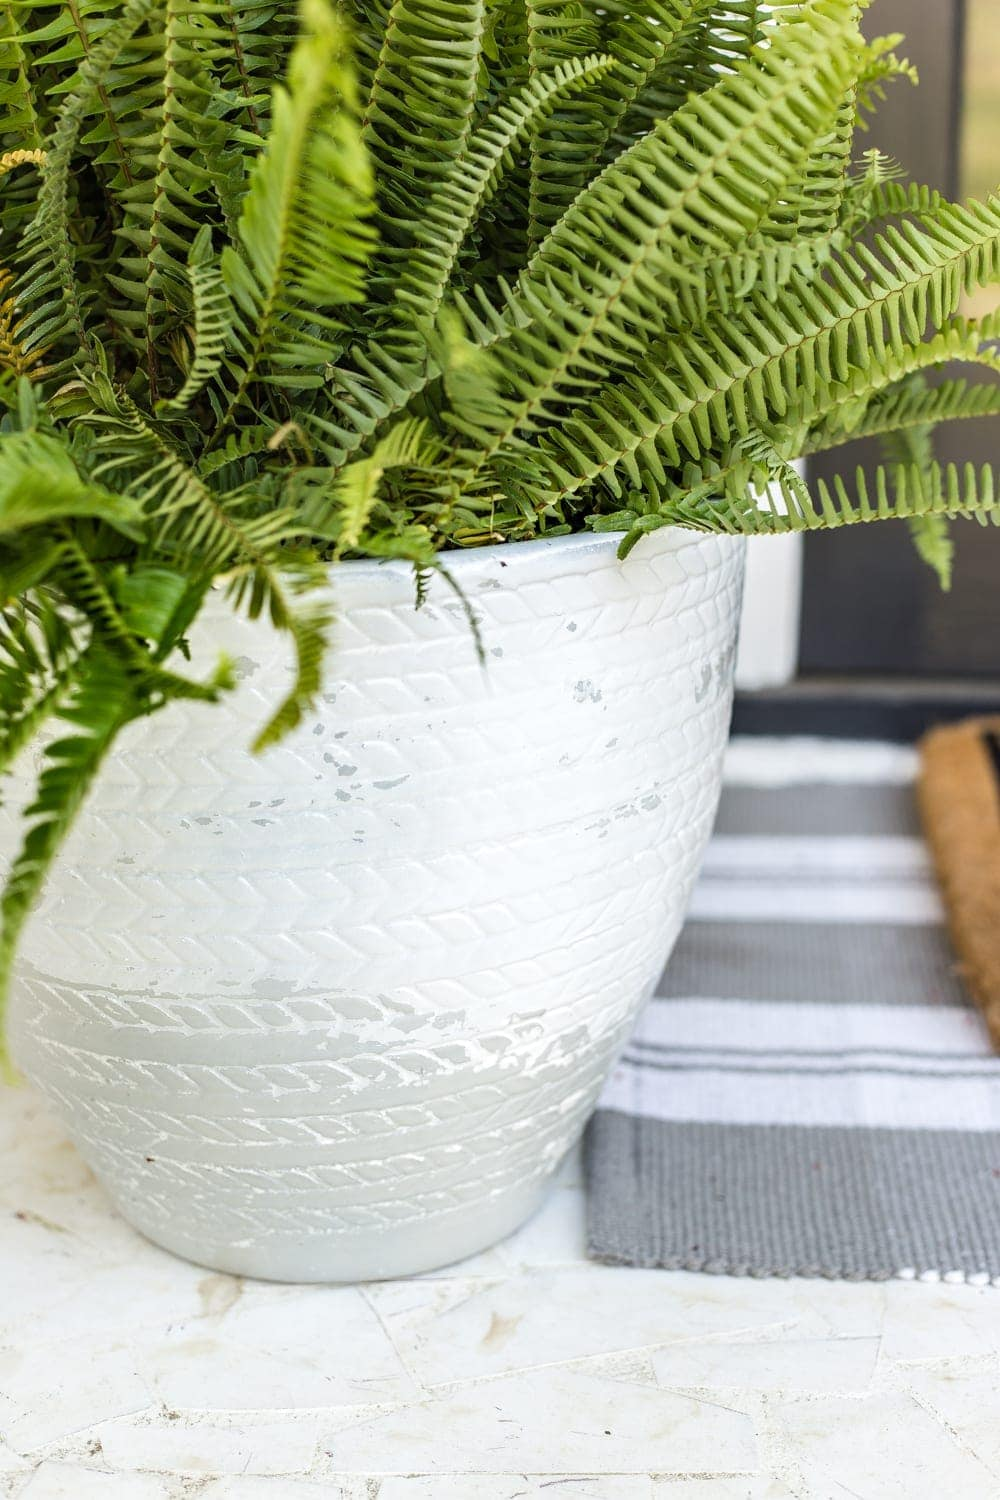 How to Distress Anything With 1 Simple Trick | Pottery Barn look-alike Tuscan style weathered planters using just spray paint